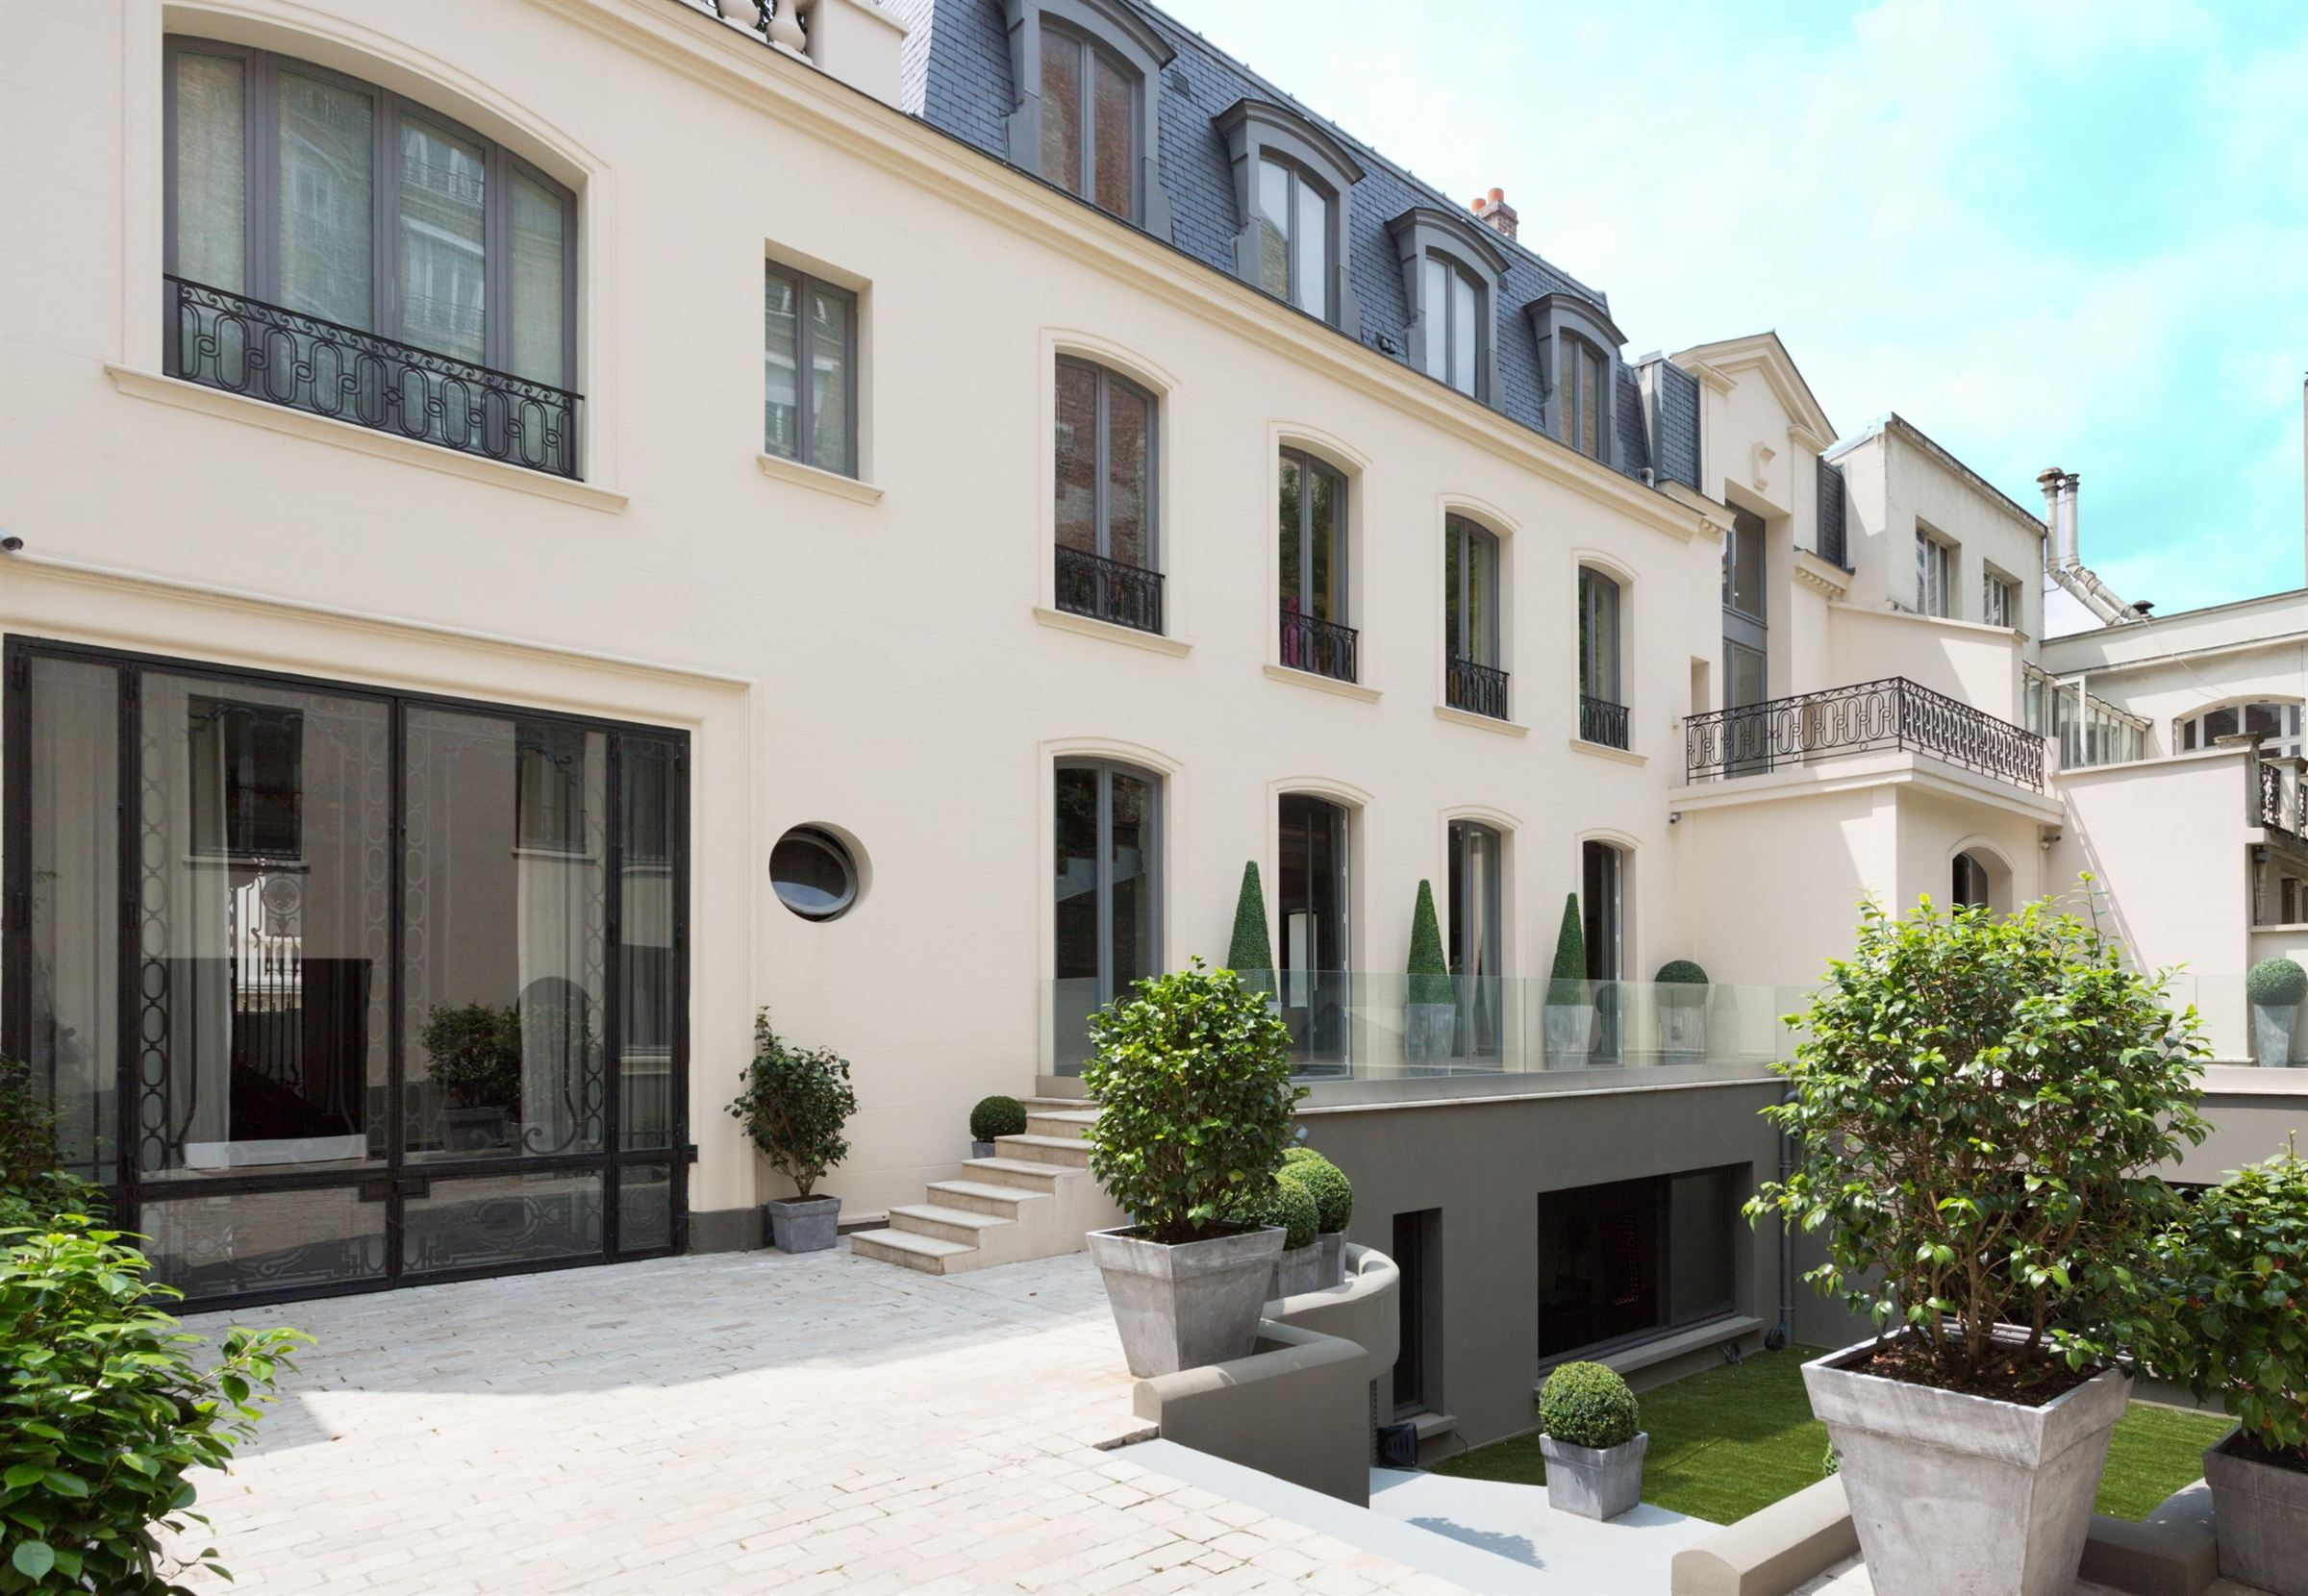 Einfamilienhaus für Verkauf beim Private Mansion for sale, renovated, Paris 16 - Foch, 68 bedrooms Paris, Ile-De-France, 75016 Frankreich